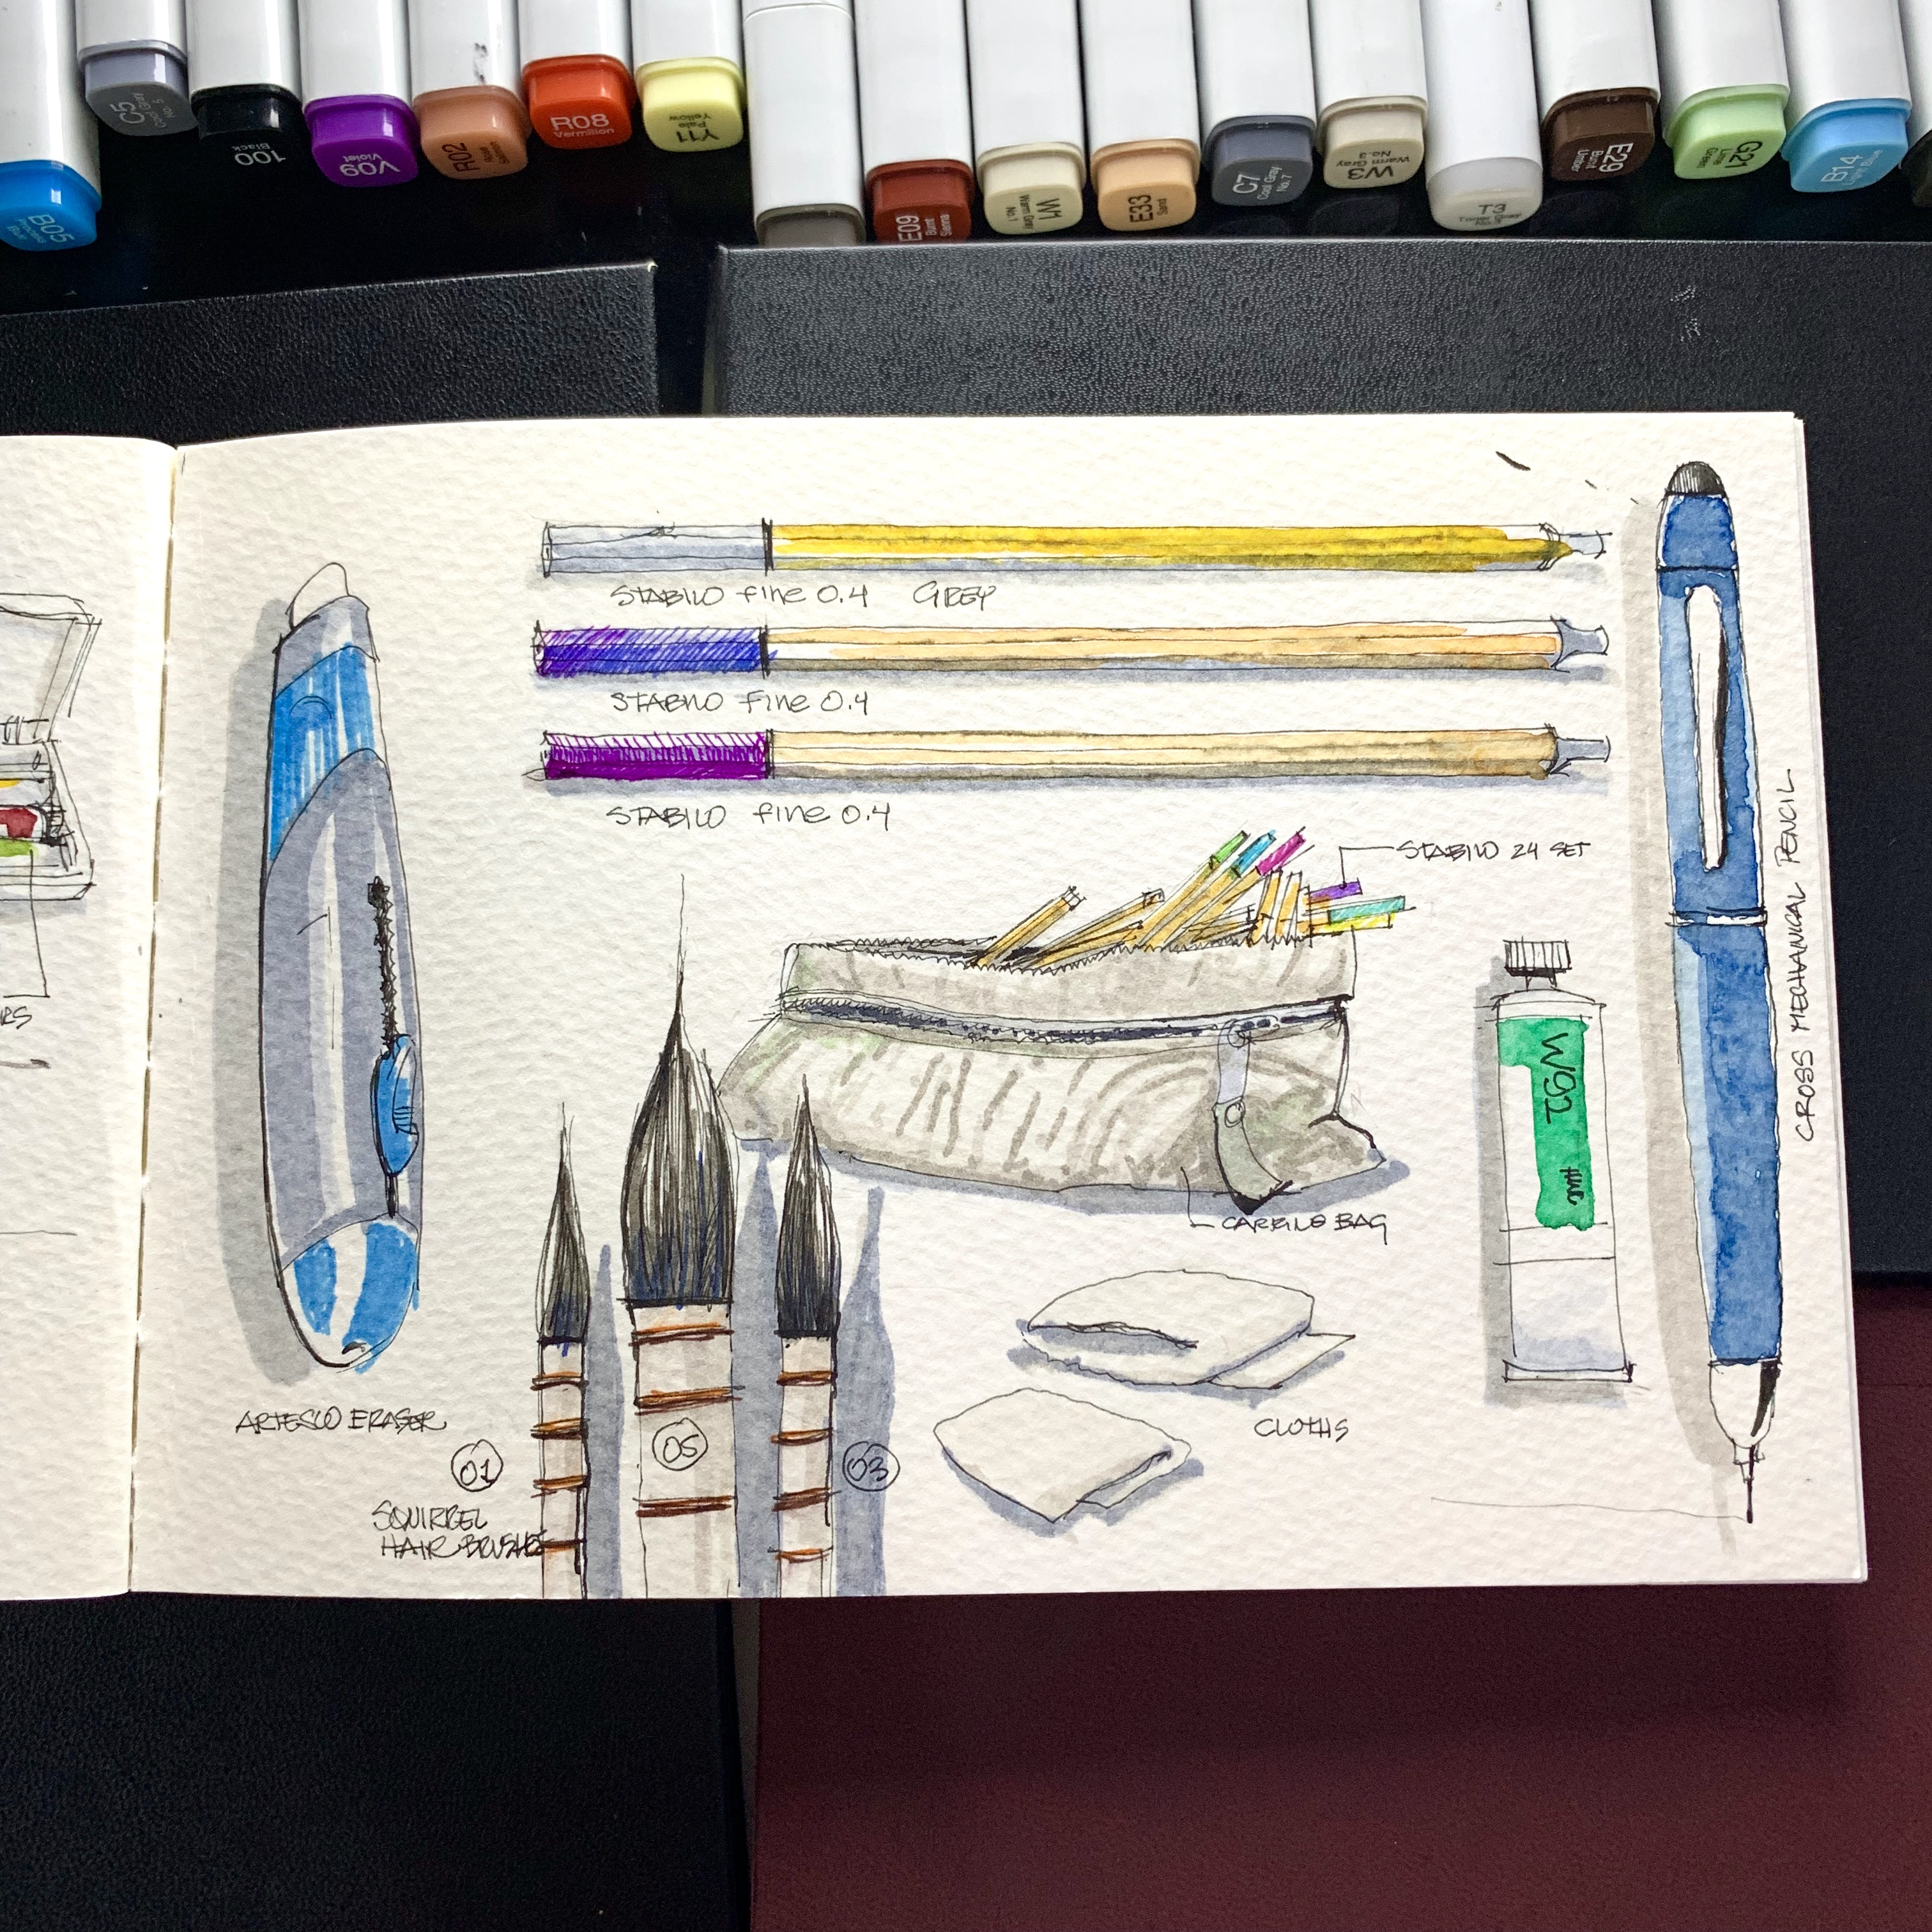 Sketchbook over desk with work tool sketches